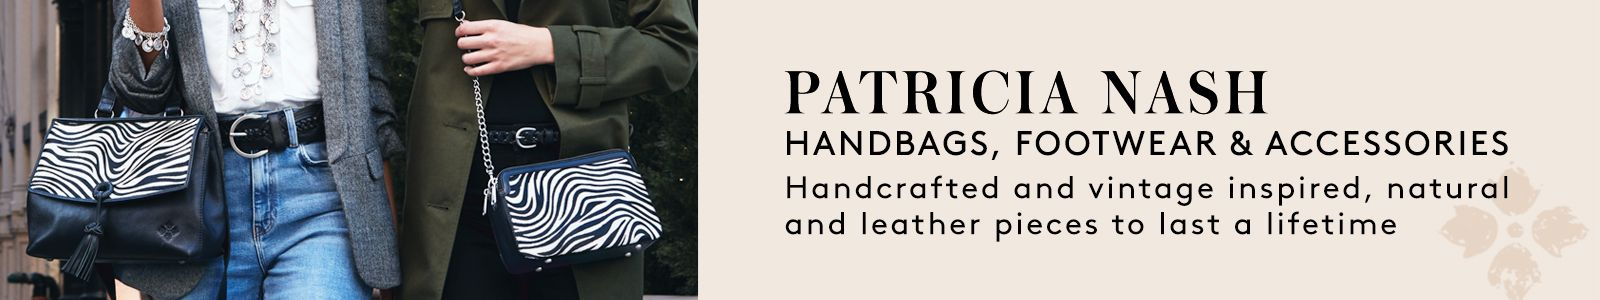 Patricia Nash, Handbags, Footwear and Accessories, Handcrafted and vintage inspired, natural and leather pieces to last a lifetime